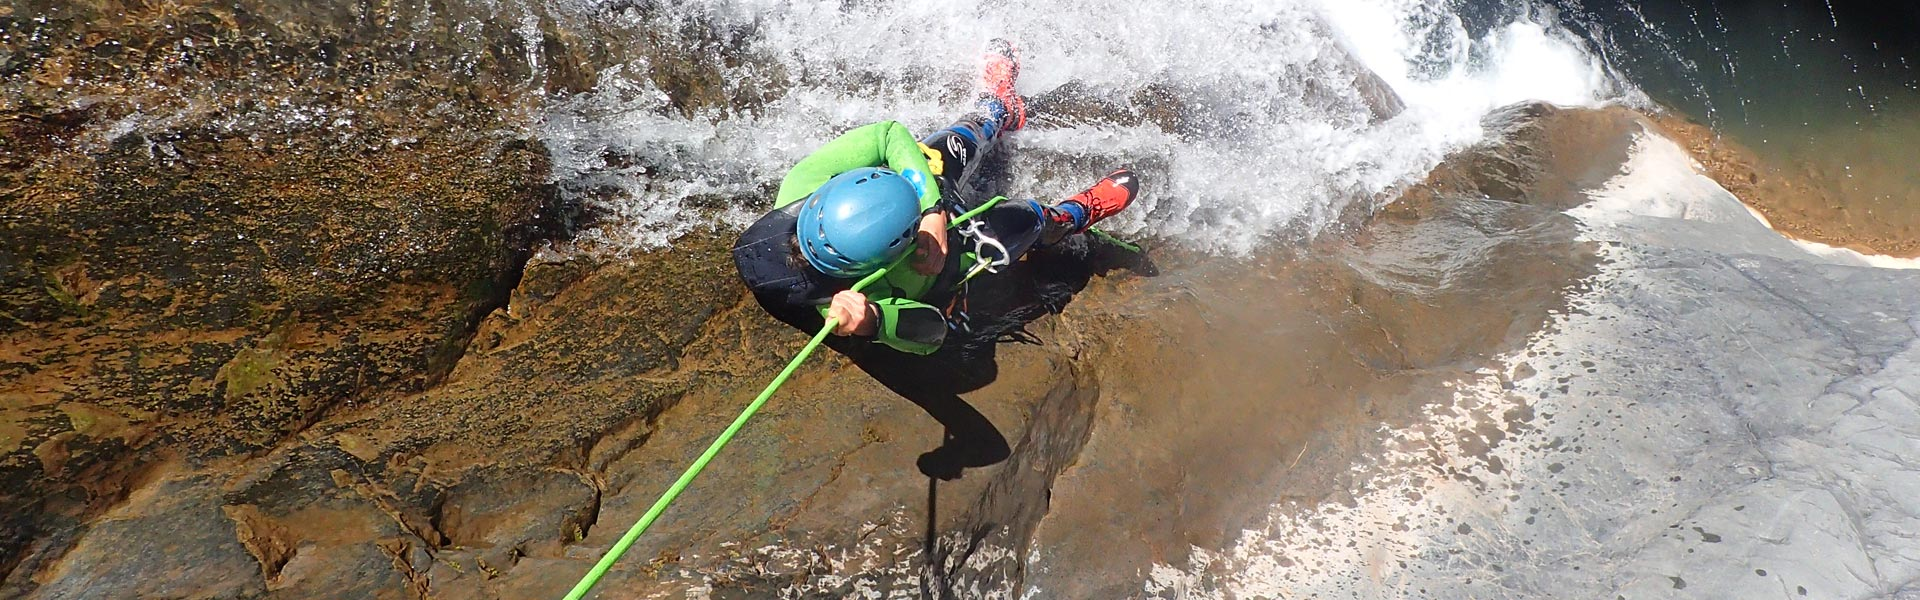 Canyoning Grenoble, Vertic'O